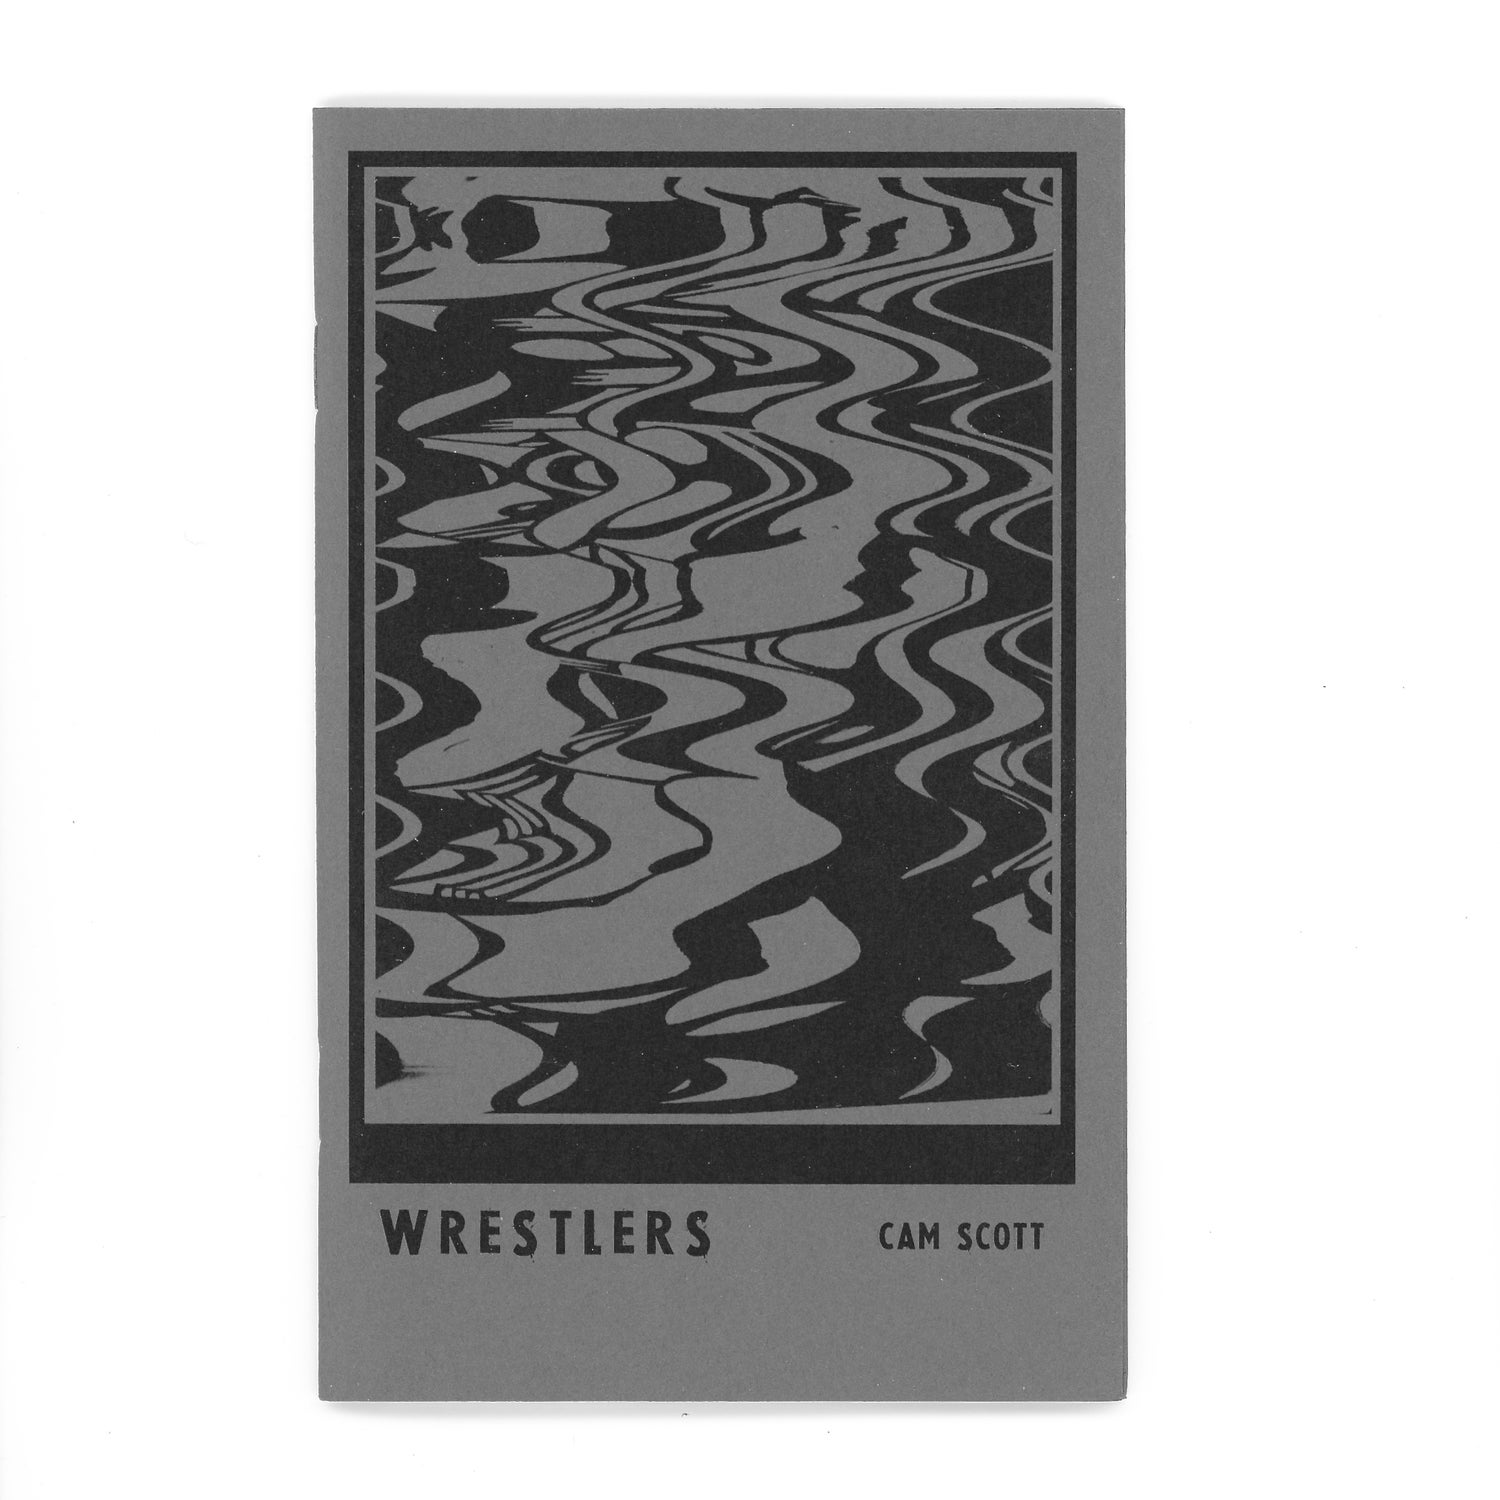 Image of Wrestlers by Cam Scott